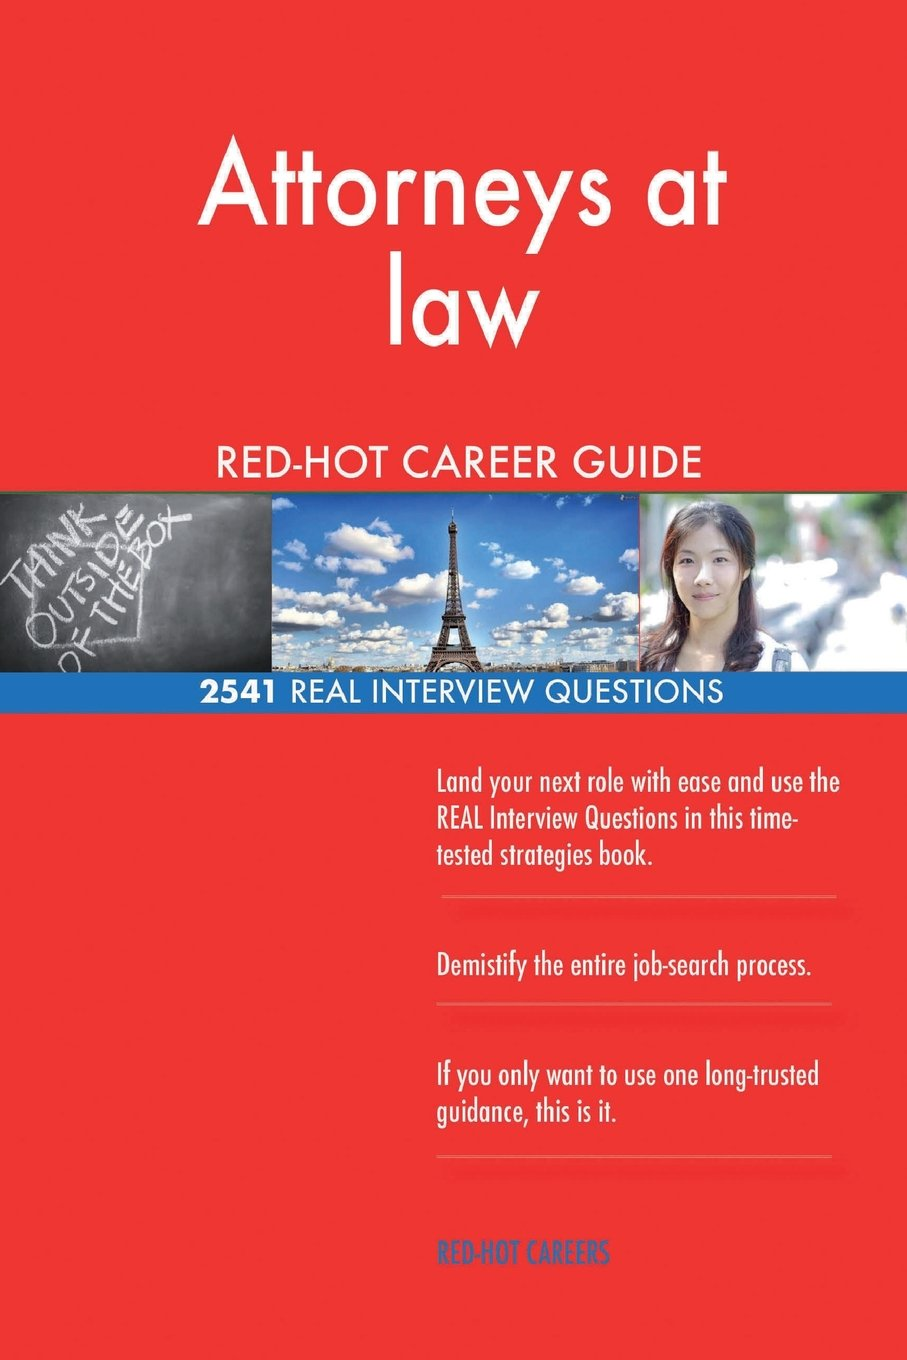 Attorneys at law RED-HOT Career Guide; 2541 REAL Interview Questions pdf